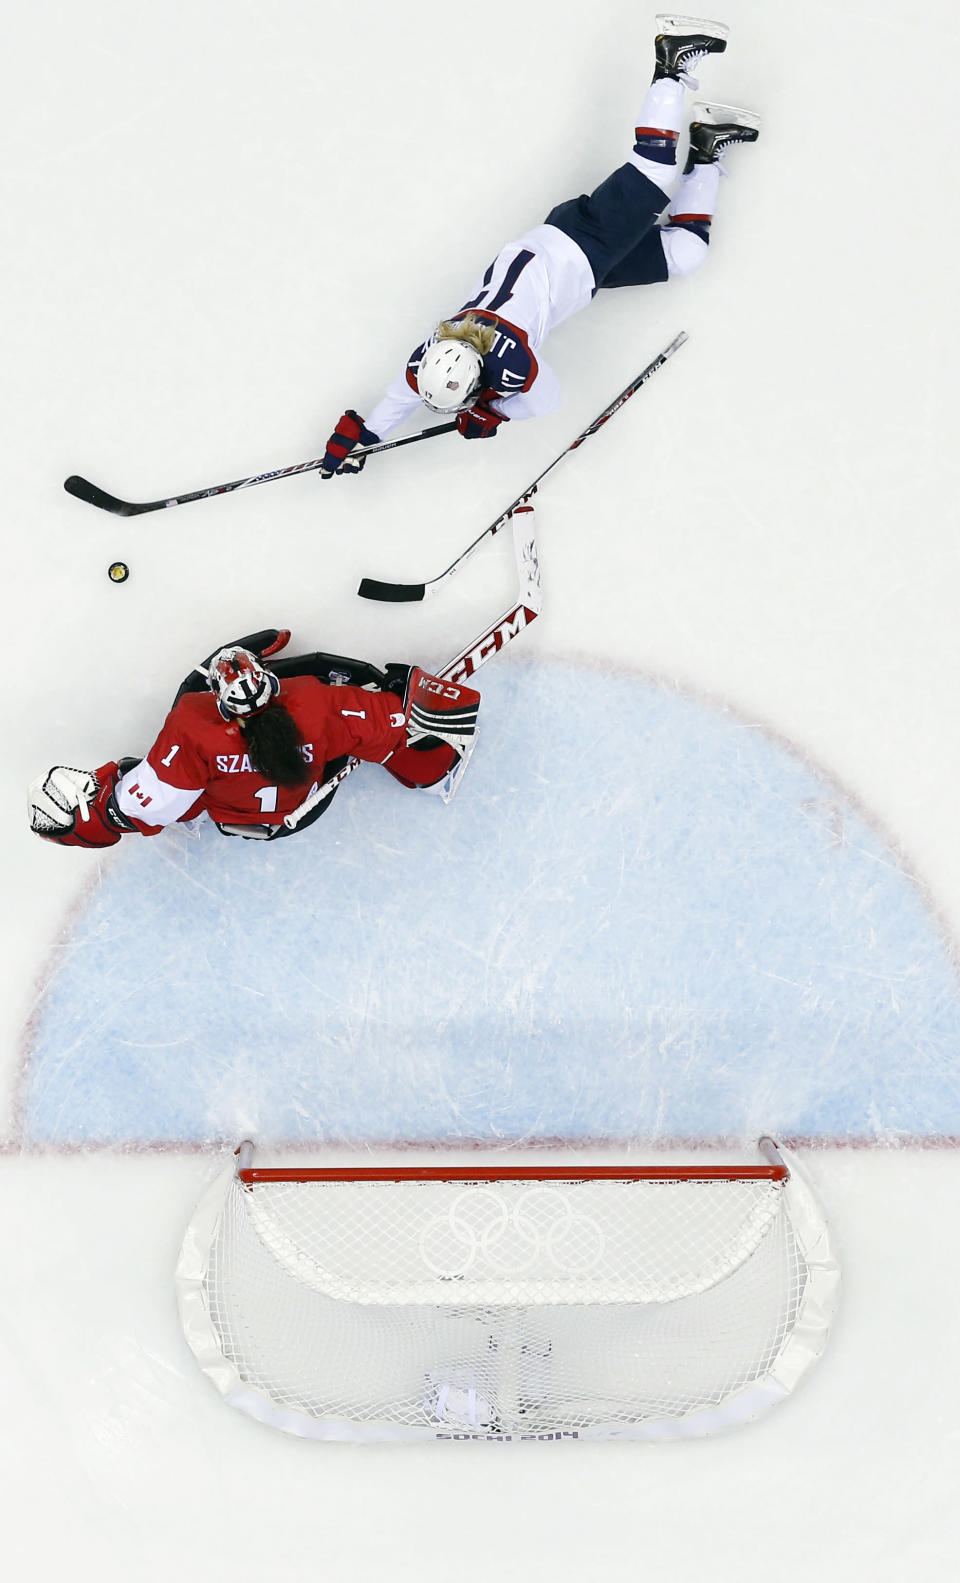 Goalkeeper Shannon Szabados of Canada (1) blocks a shot by Jocelyne Lamoureux of the United States (17) during the women's gold medal ice hockey game at the 2014 Winter Olympics, Thursday, Feb. 20, 2014, in Sochi, Russia. (AP Photo/David J. Phillip )